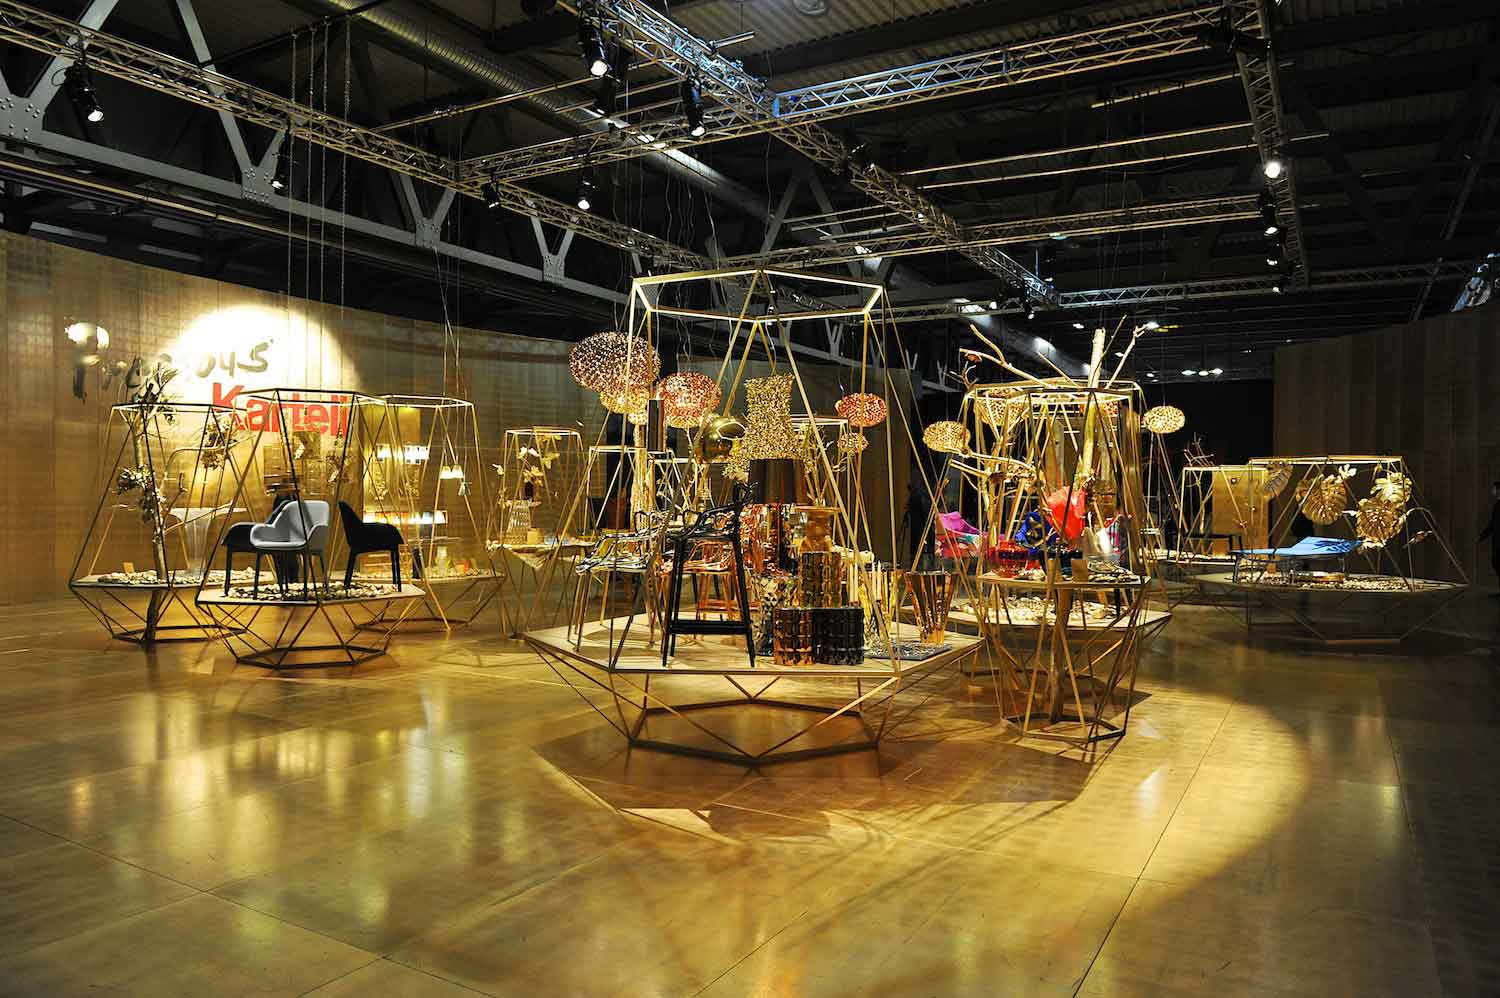 Salone del mobile milan international furniture fair for Salone arredamento milano